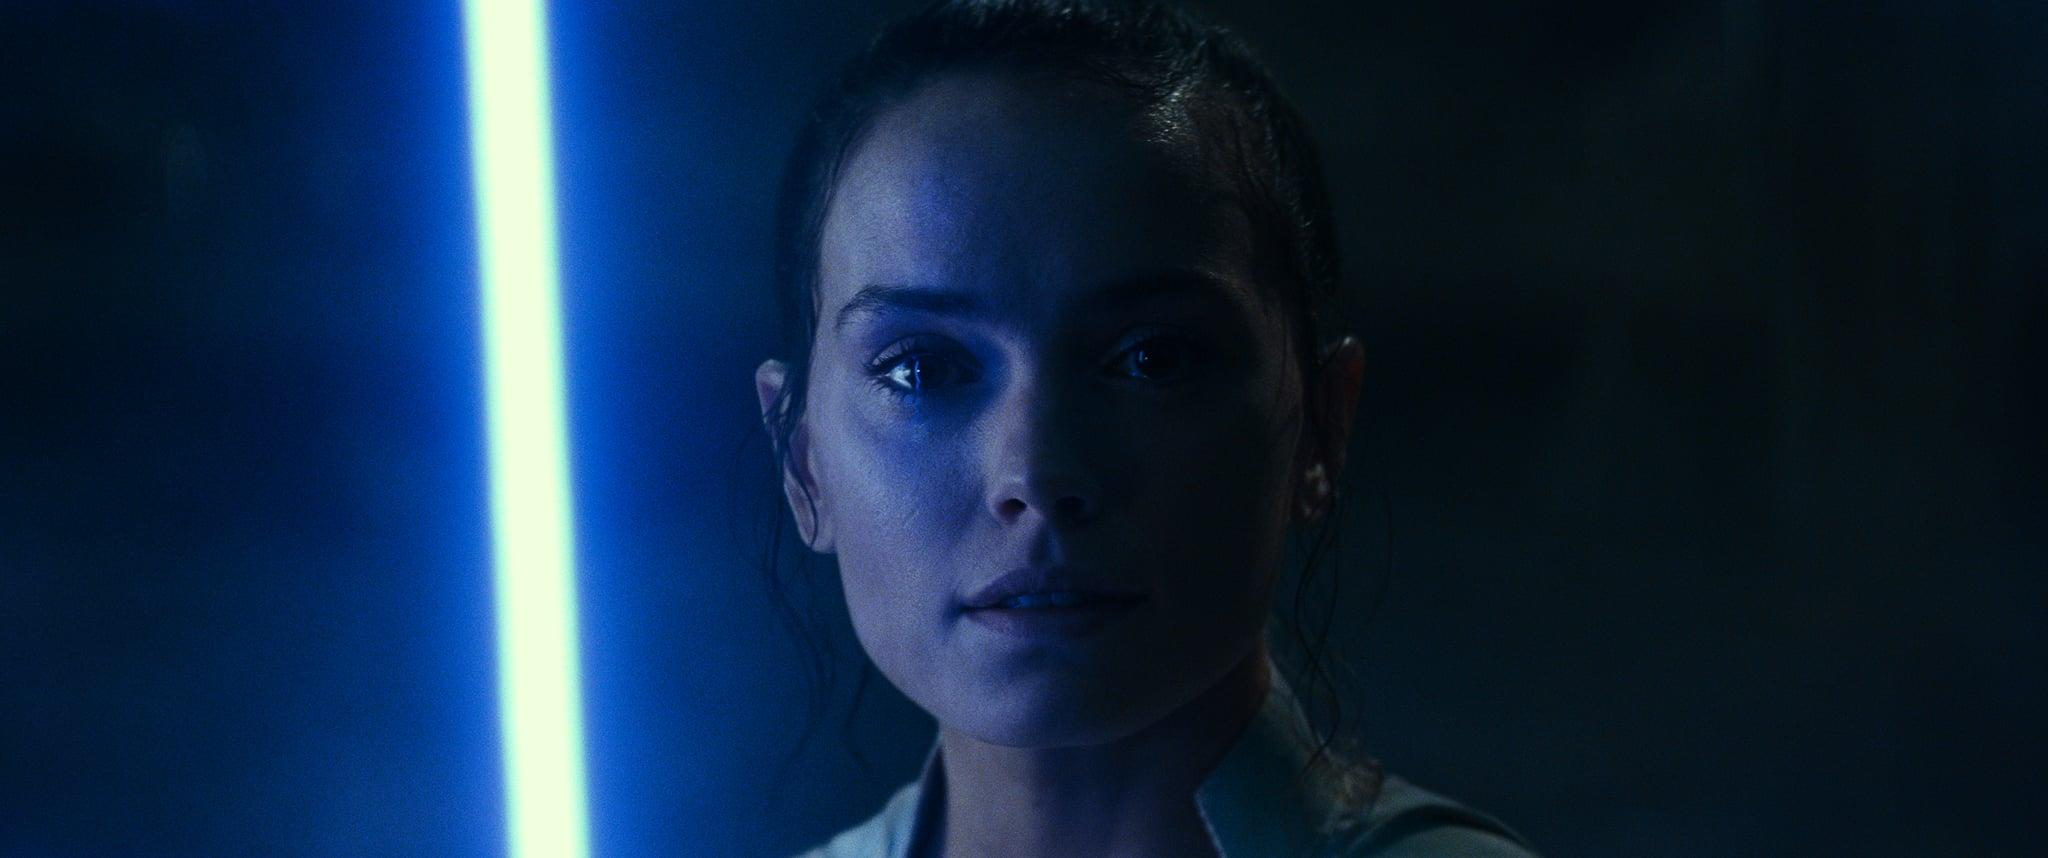 3 Important Questions We Have About Rey S Lightsaber In Star Wars The Rise Of Skywalker